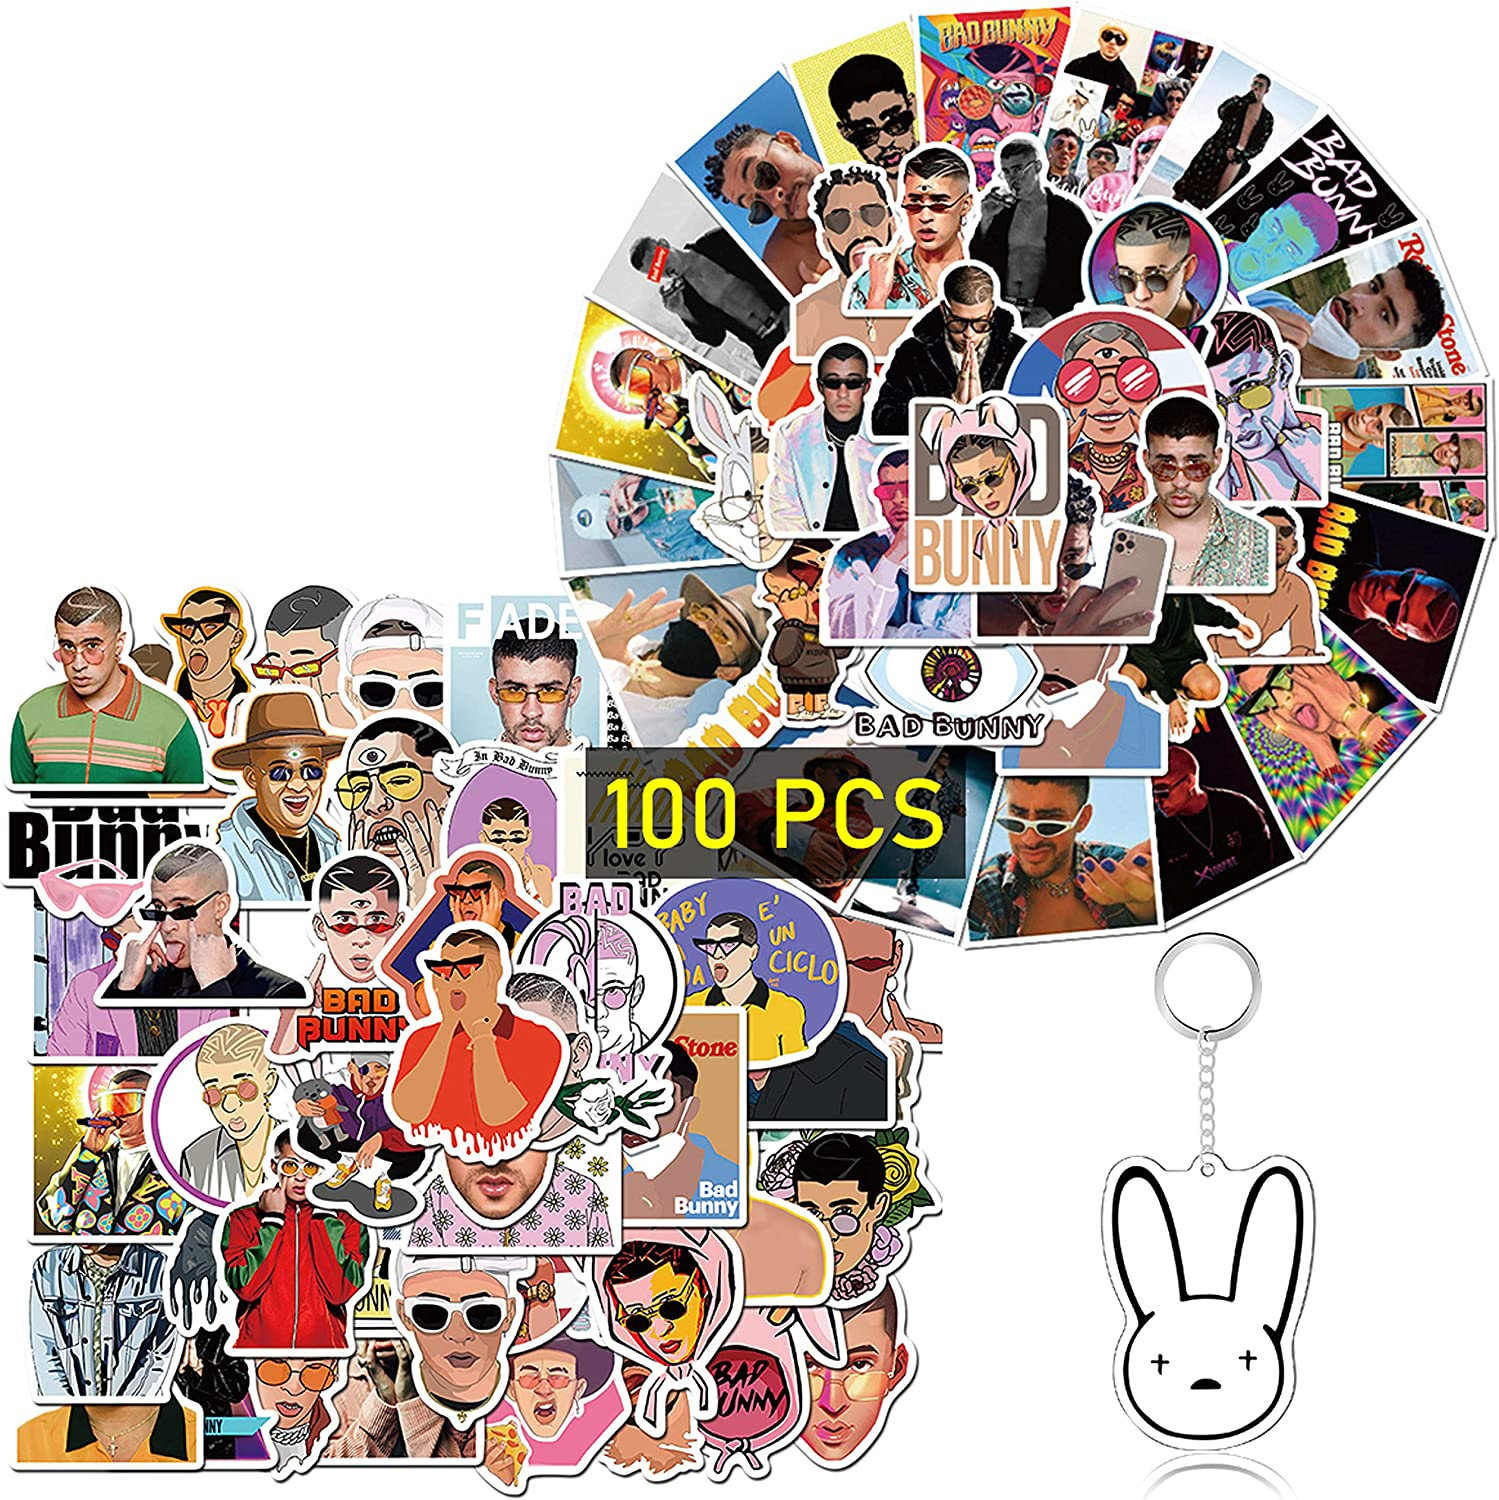 Kilmila Pop Singer Bad Bunny Stickers [100PCS] Music Film Vinyl Skateboard Guitar Travel Case Sticker Door Laptop Luggage Car Bike Bicycle Stickers(with Bunny Rabbit Keychain)